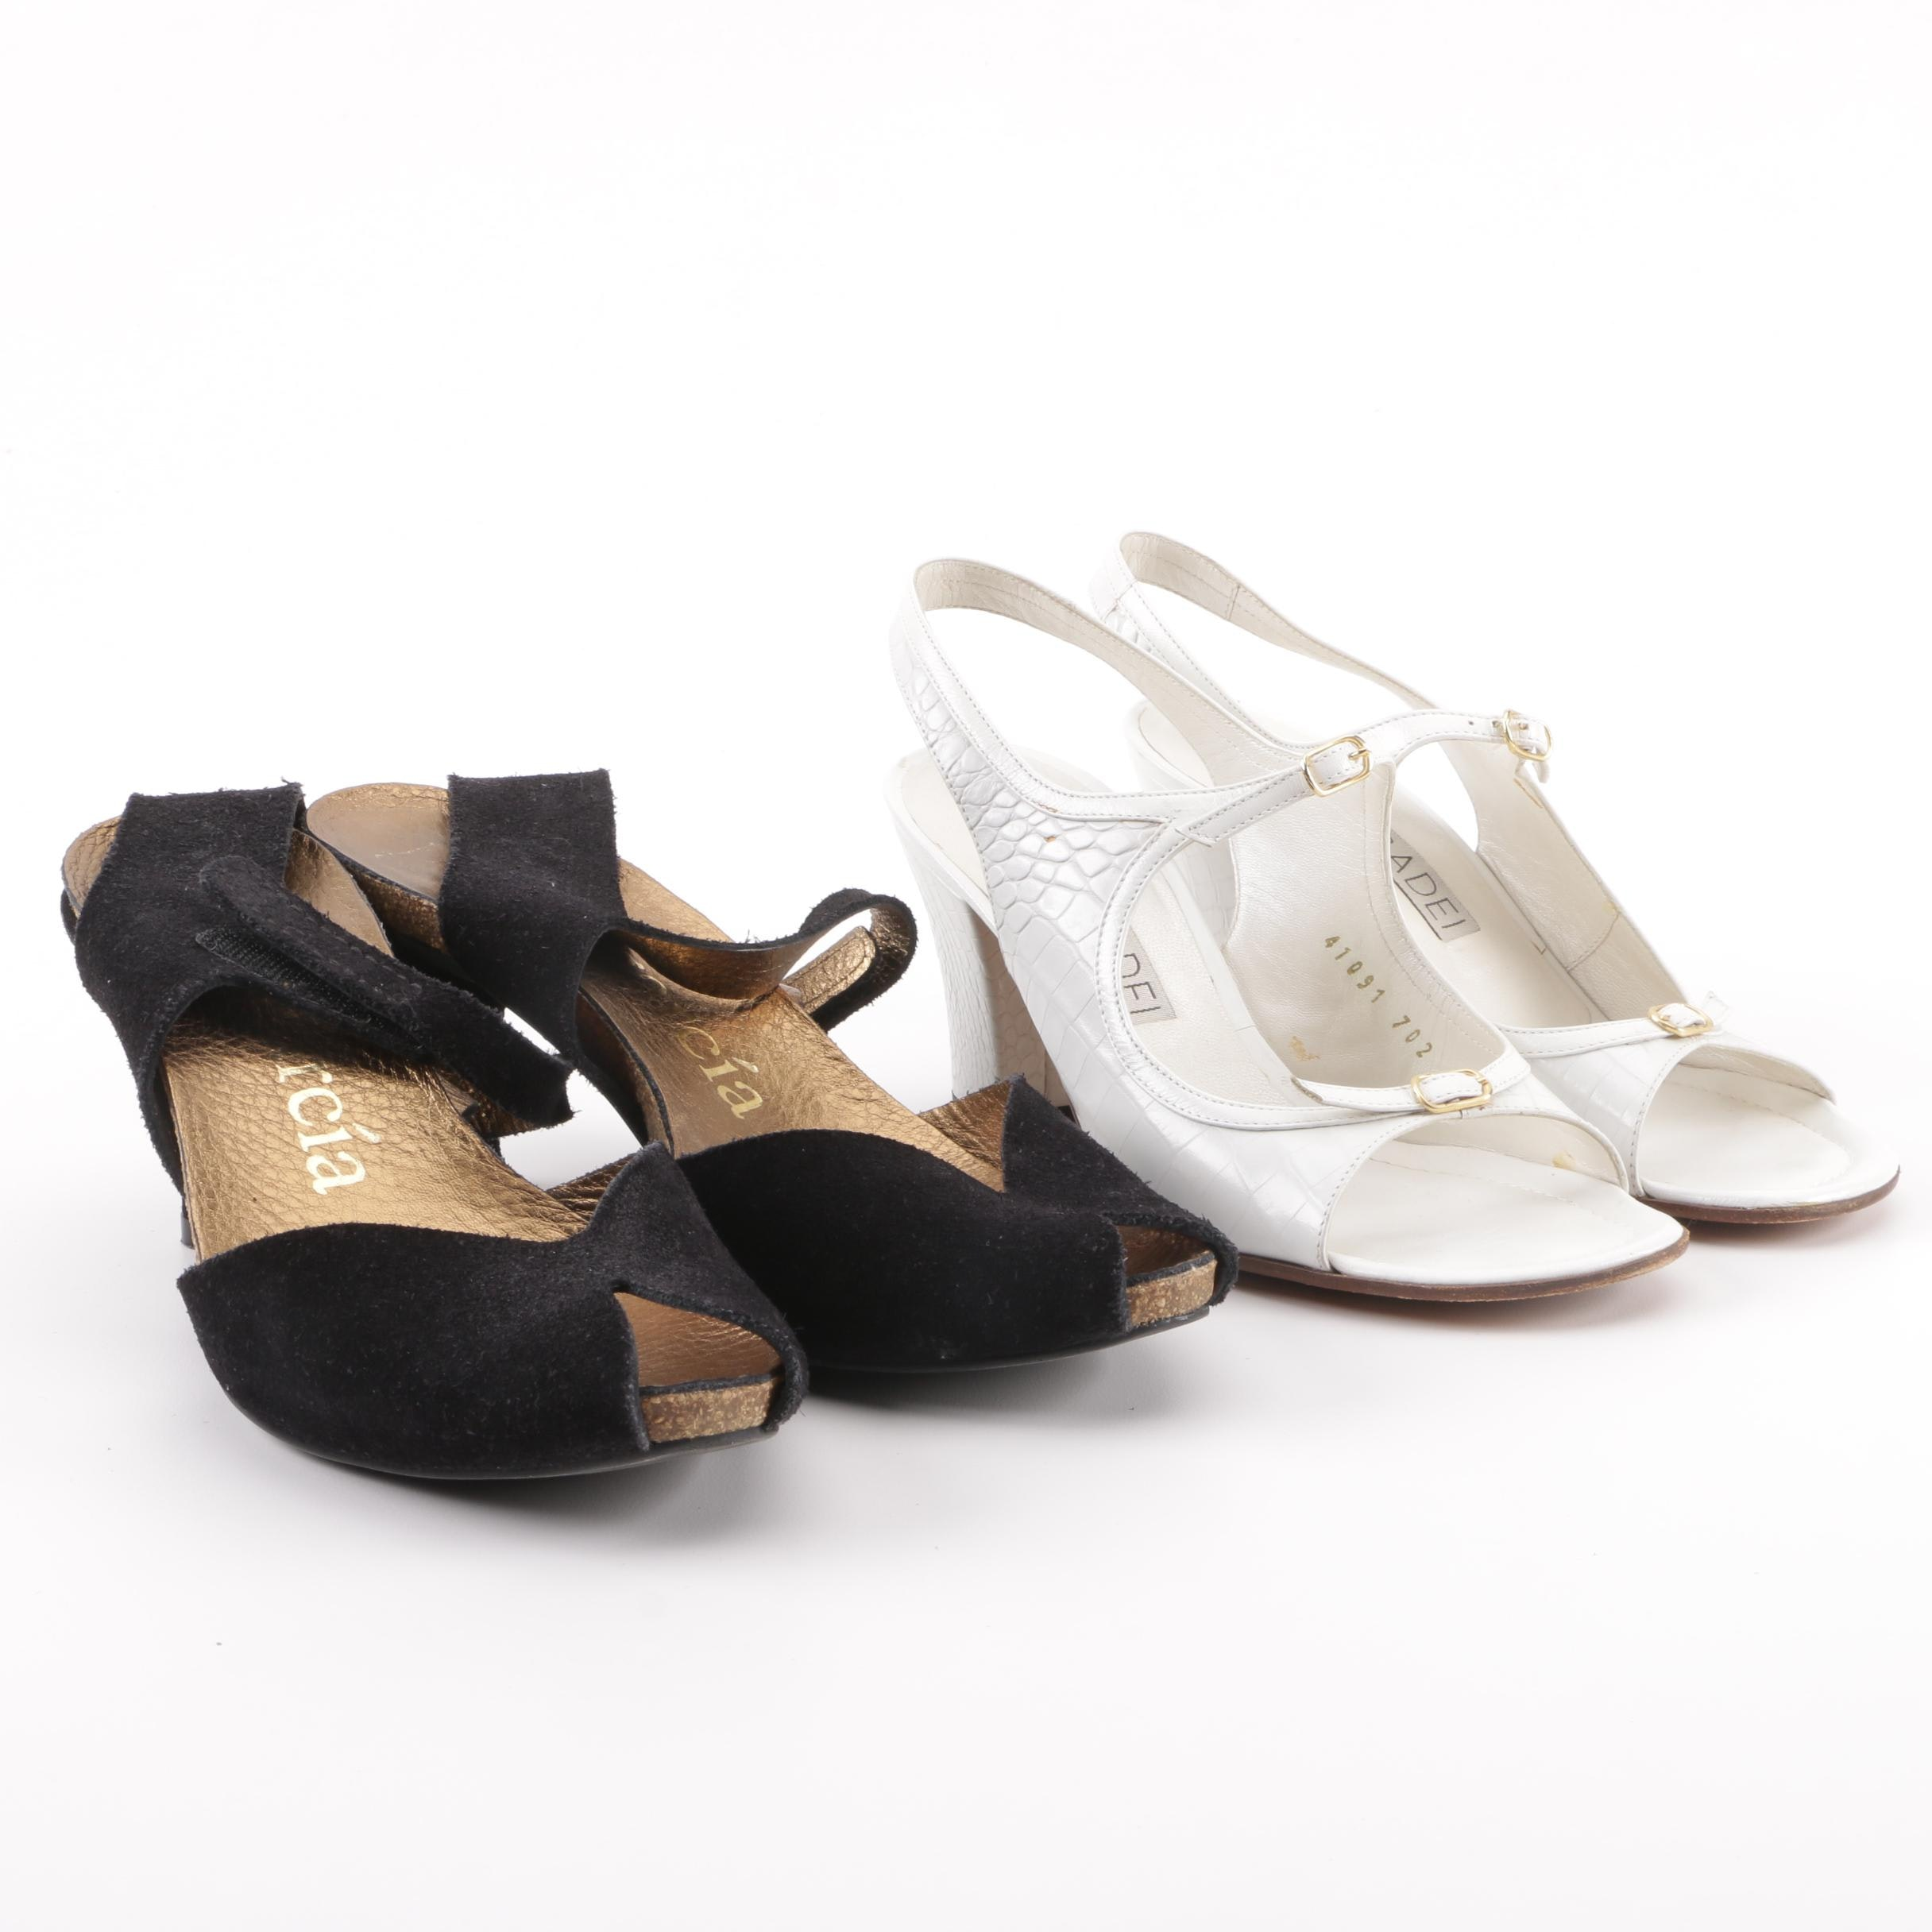 Pedro Garcia Black Suede and Casadei Crocodile Embossed White Leather Sandals